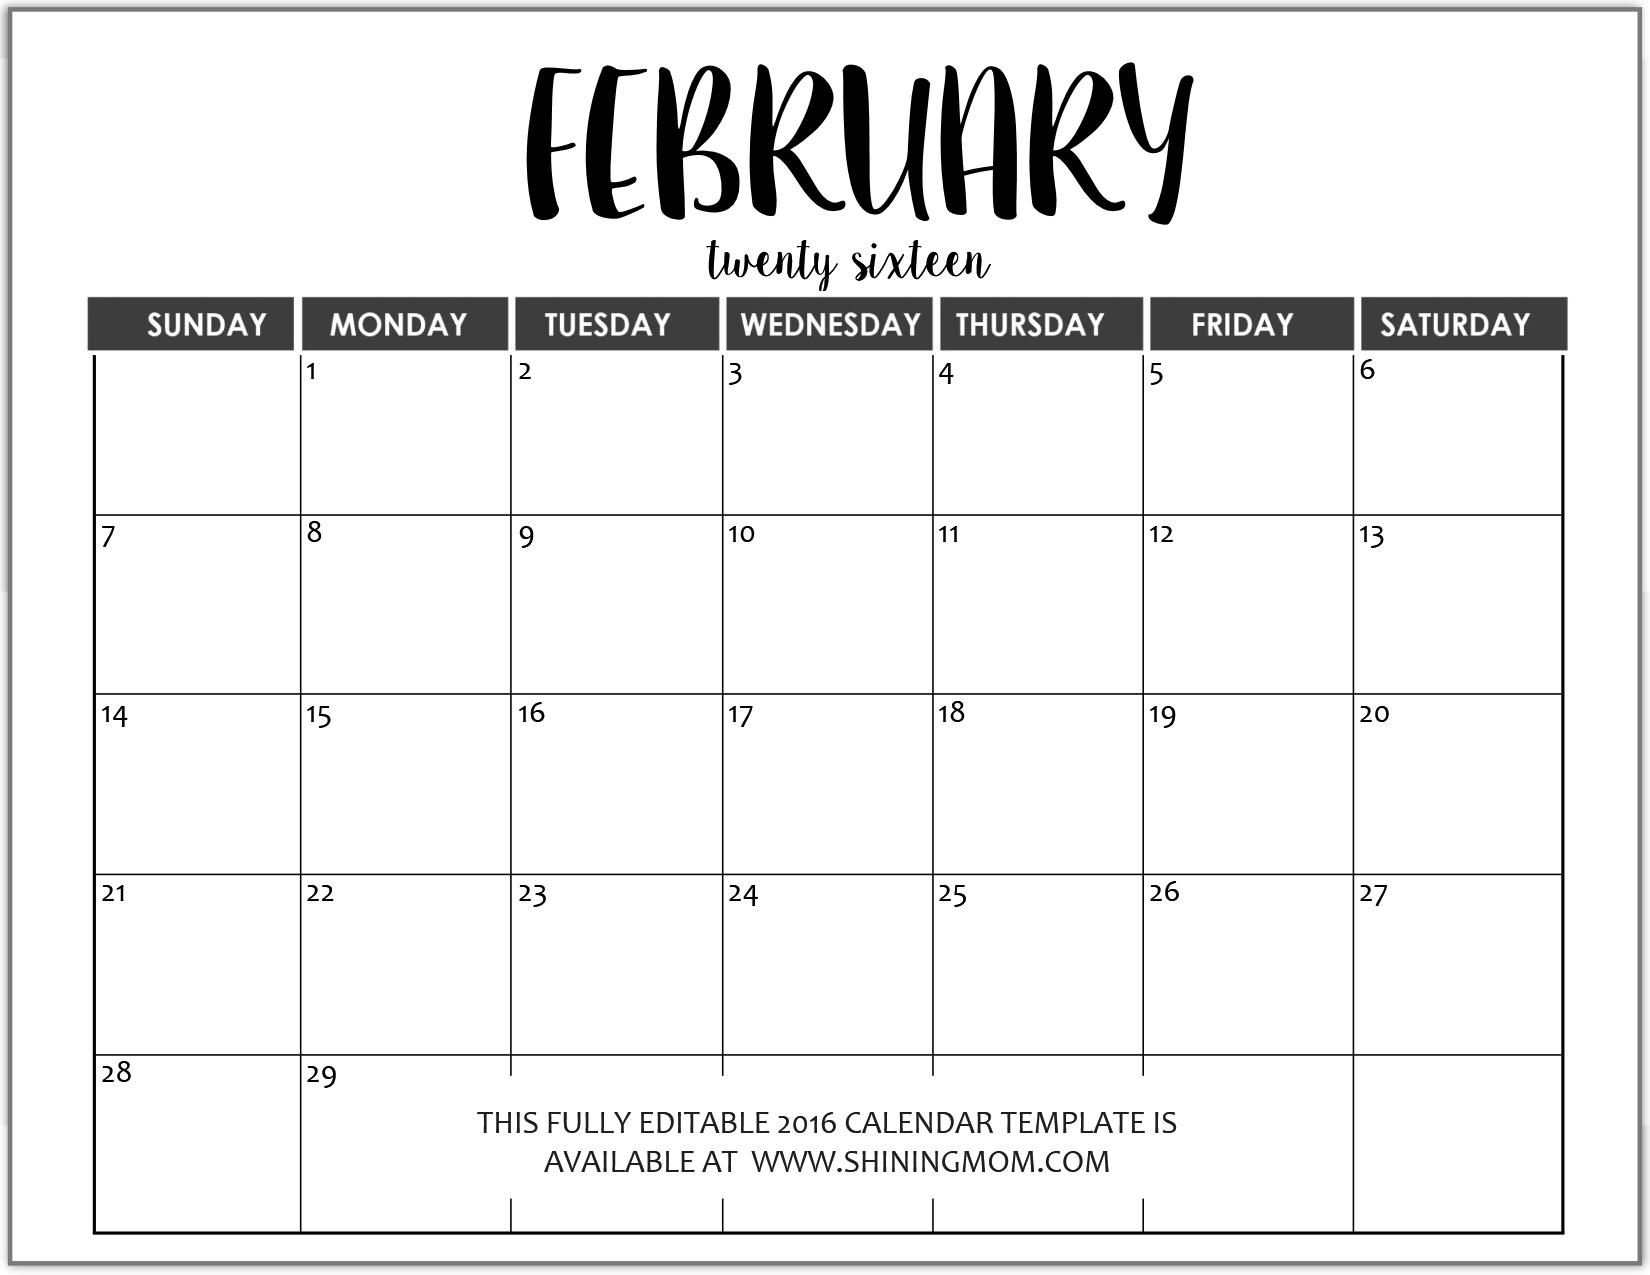 Just In: Fully Editable 2016 Calendar Templates In Ms Word Free Calendars To Download And Edit